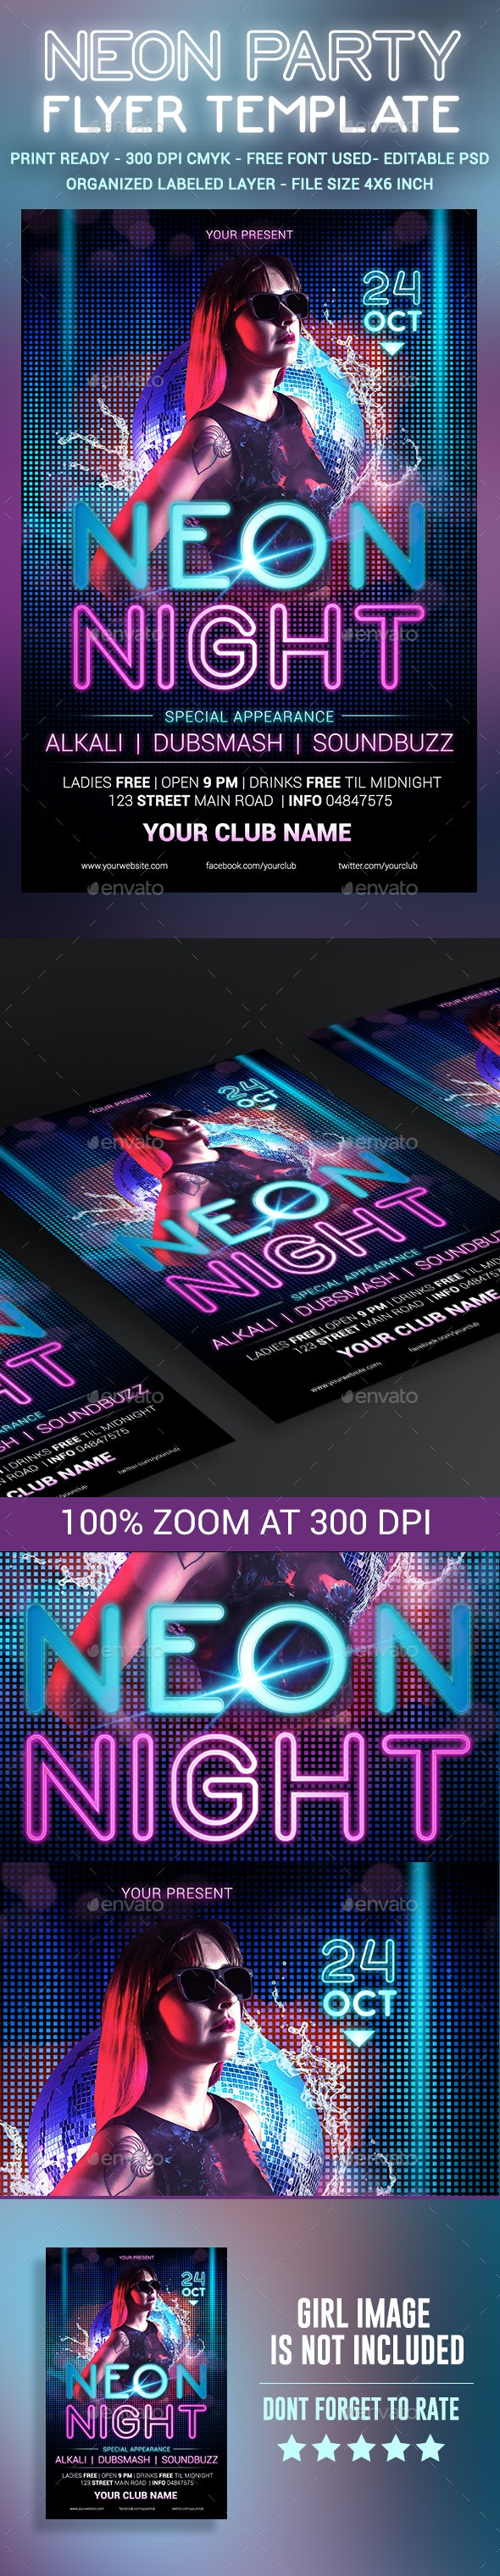 Neon Party Flyer Template - Clubs & Parties Events